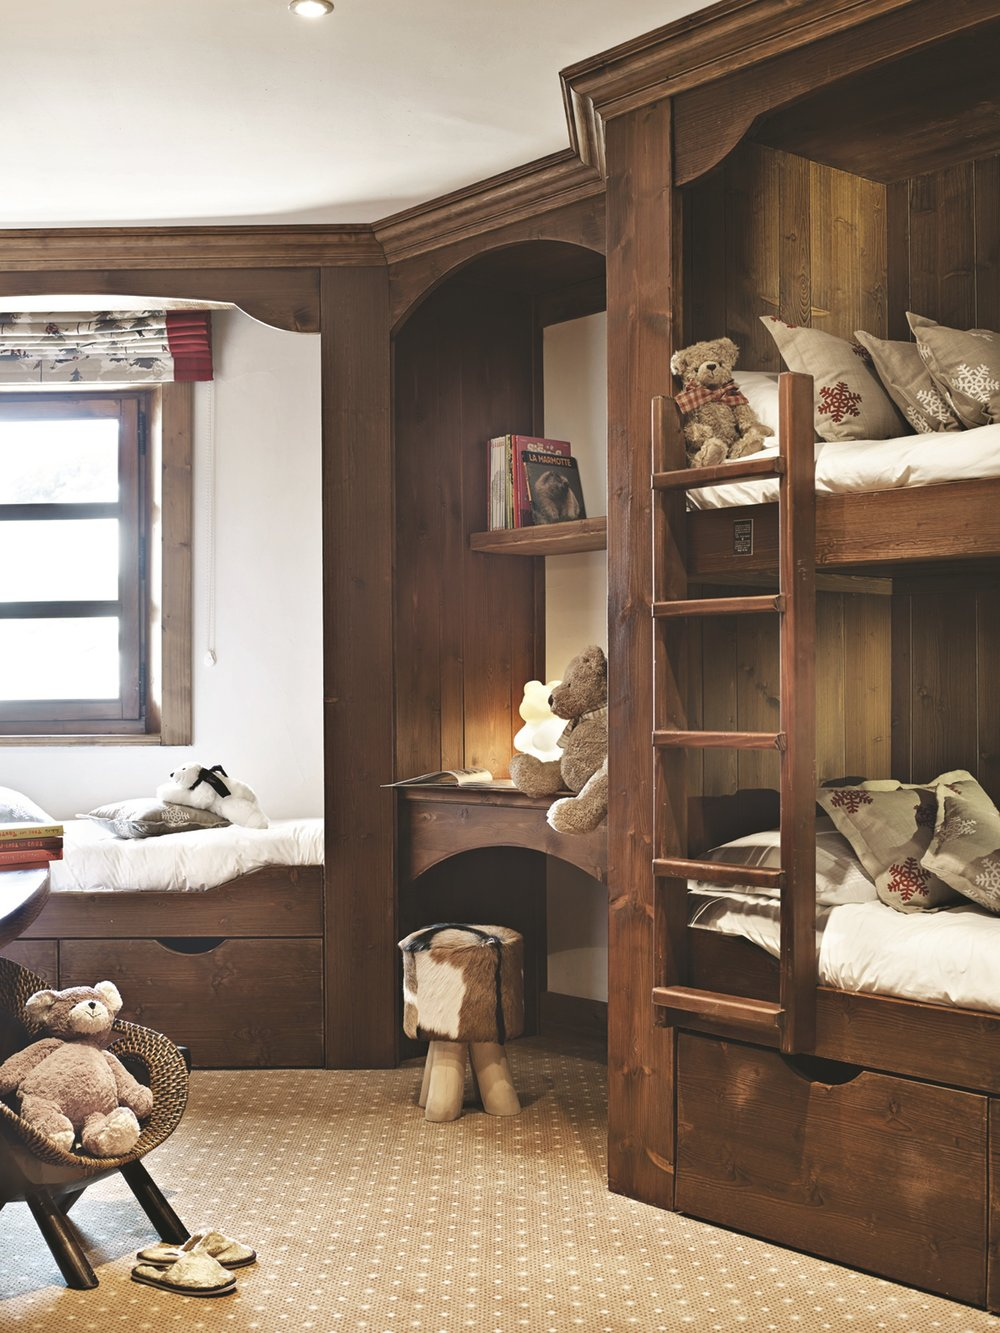 23_Suite_de_l'Ourson_Chambre_enfants_-_Ourson_bear_cub_Suite[1].jpg